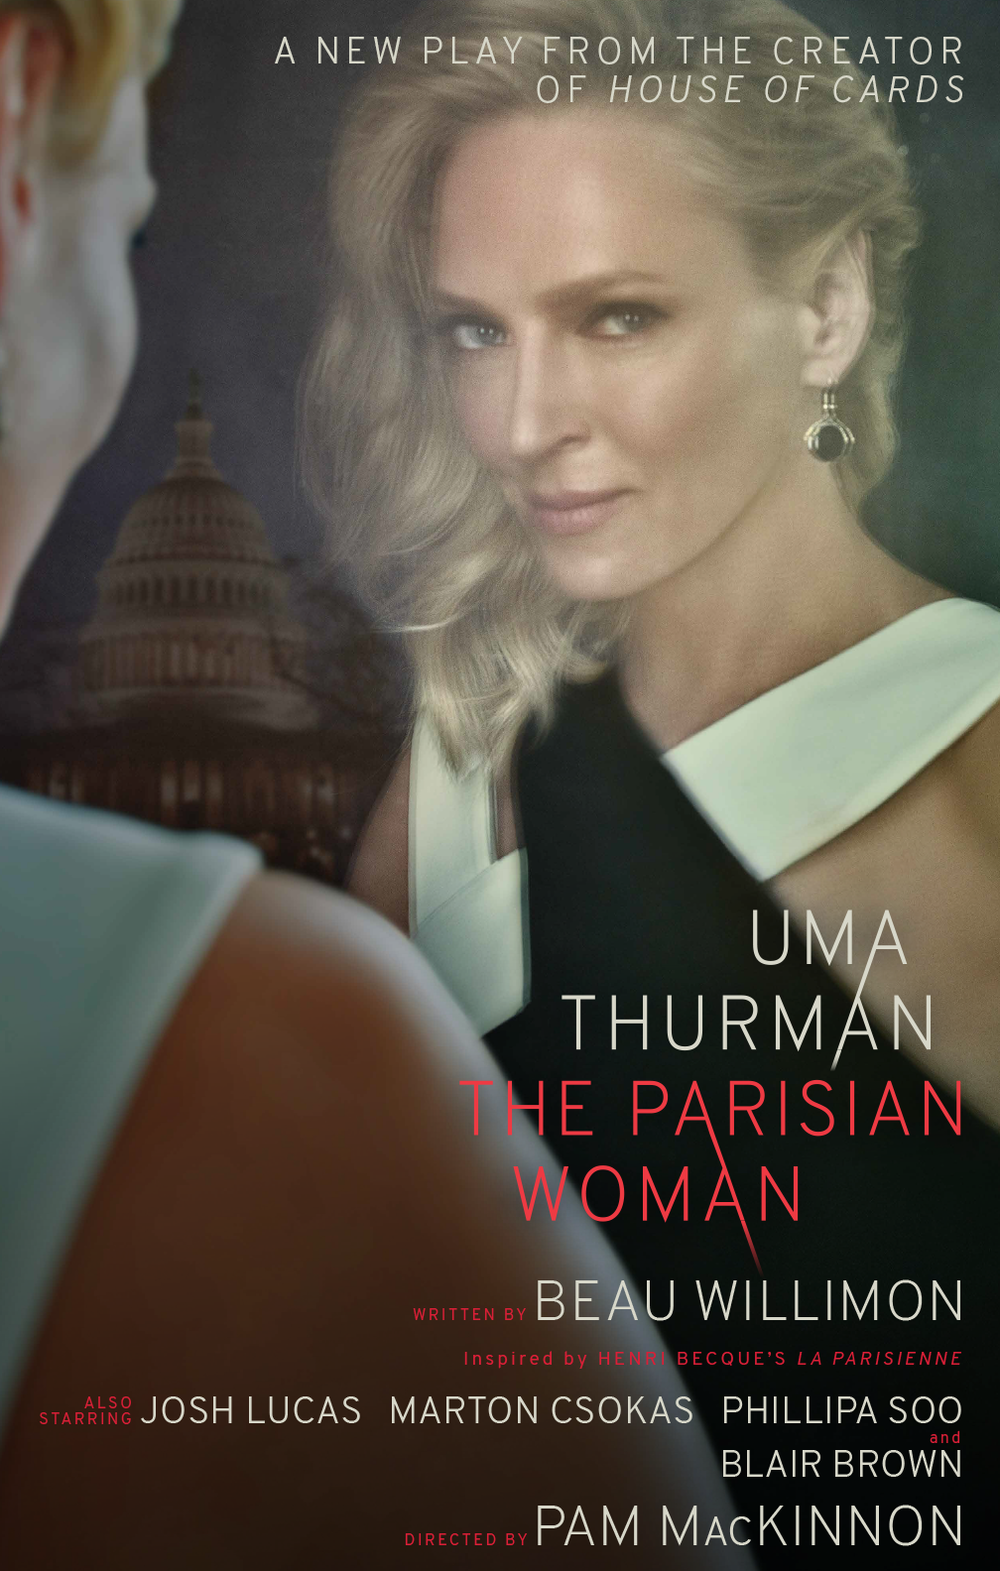 Final poster design and art direction for the 2017 Broadway production of The Parisian Woman starring Uma Thurman. Creative Direction: Vinny Sainato, Tom Callahan, Jay Cooper Title Treatment Design: Rex Bonomelli Photographer: Ruven Afanador